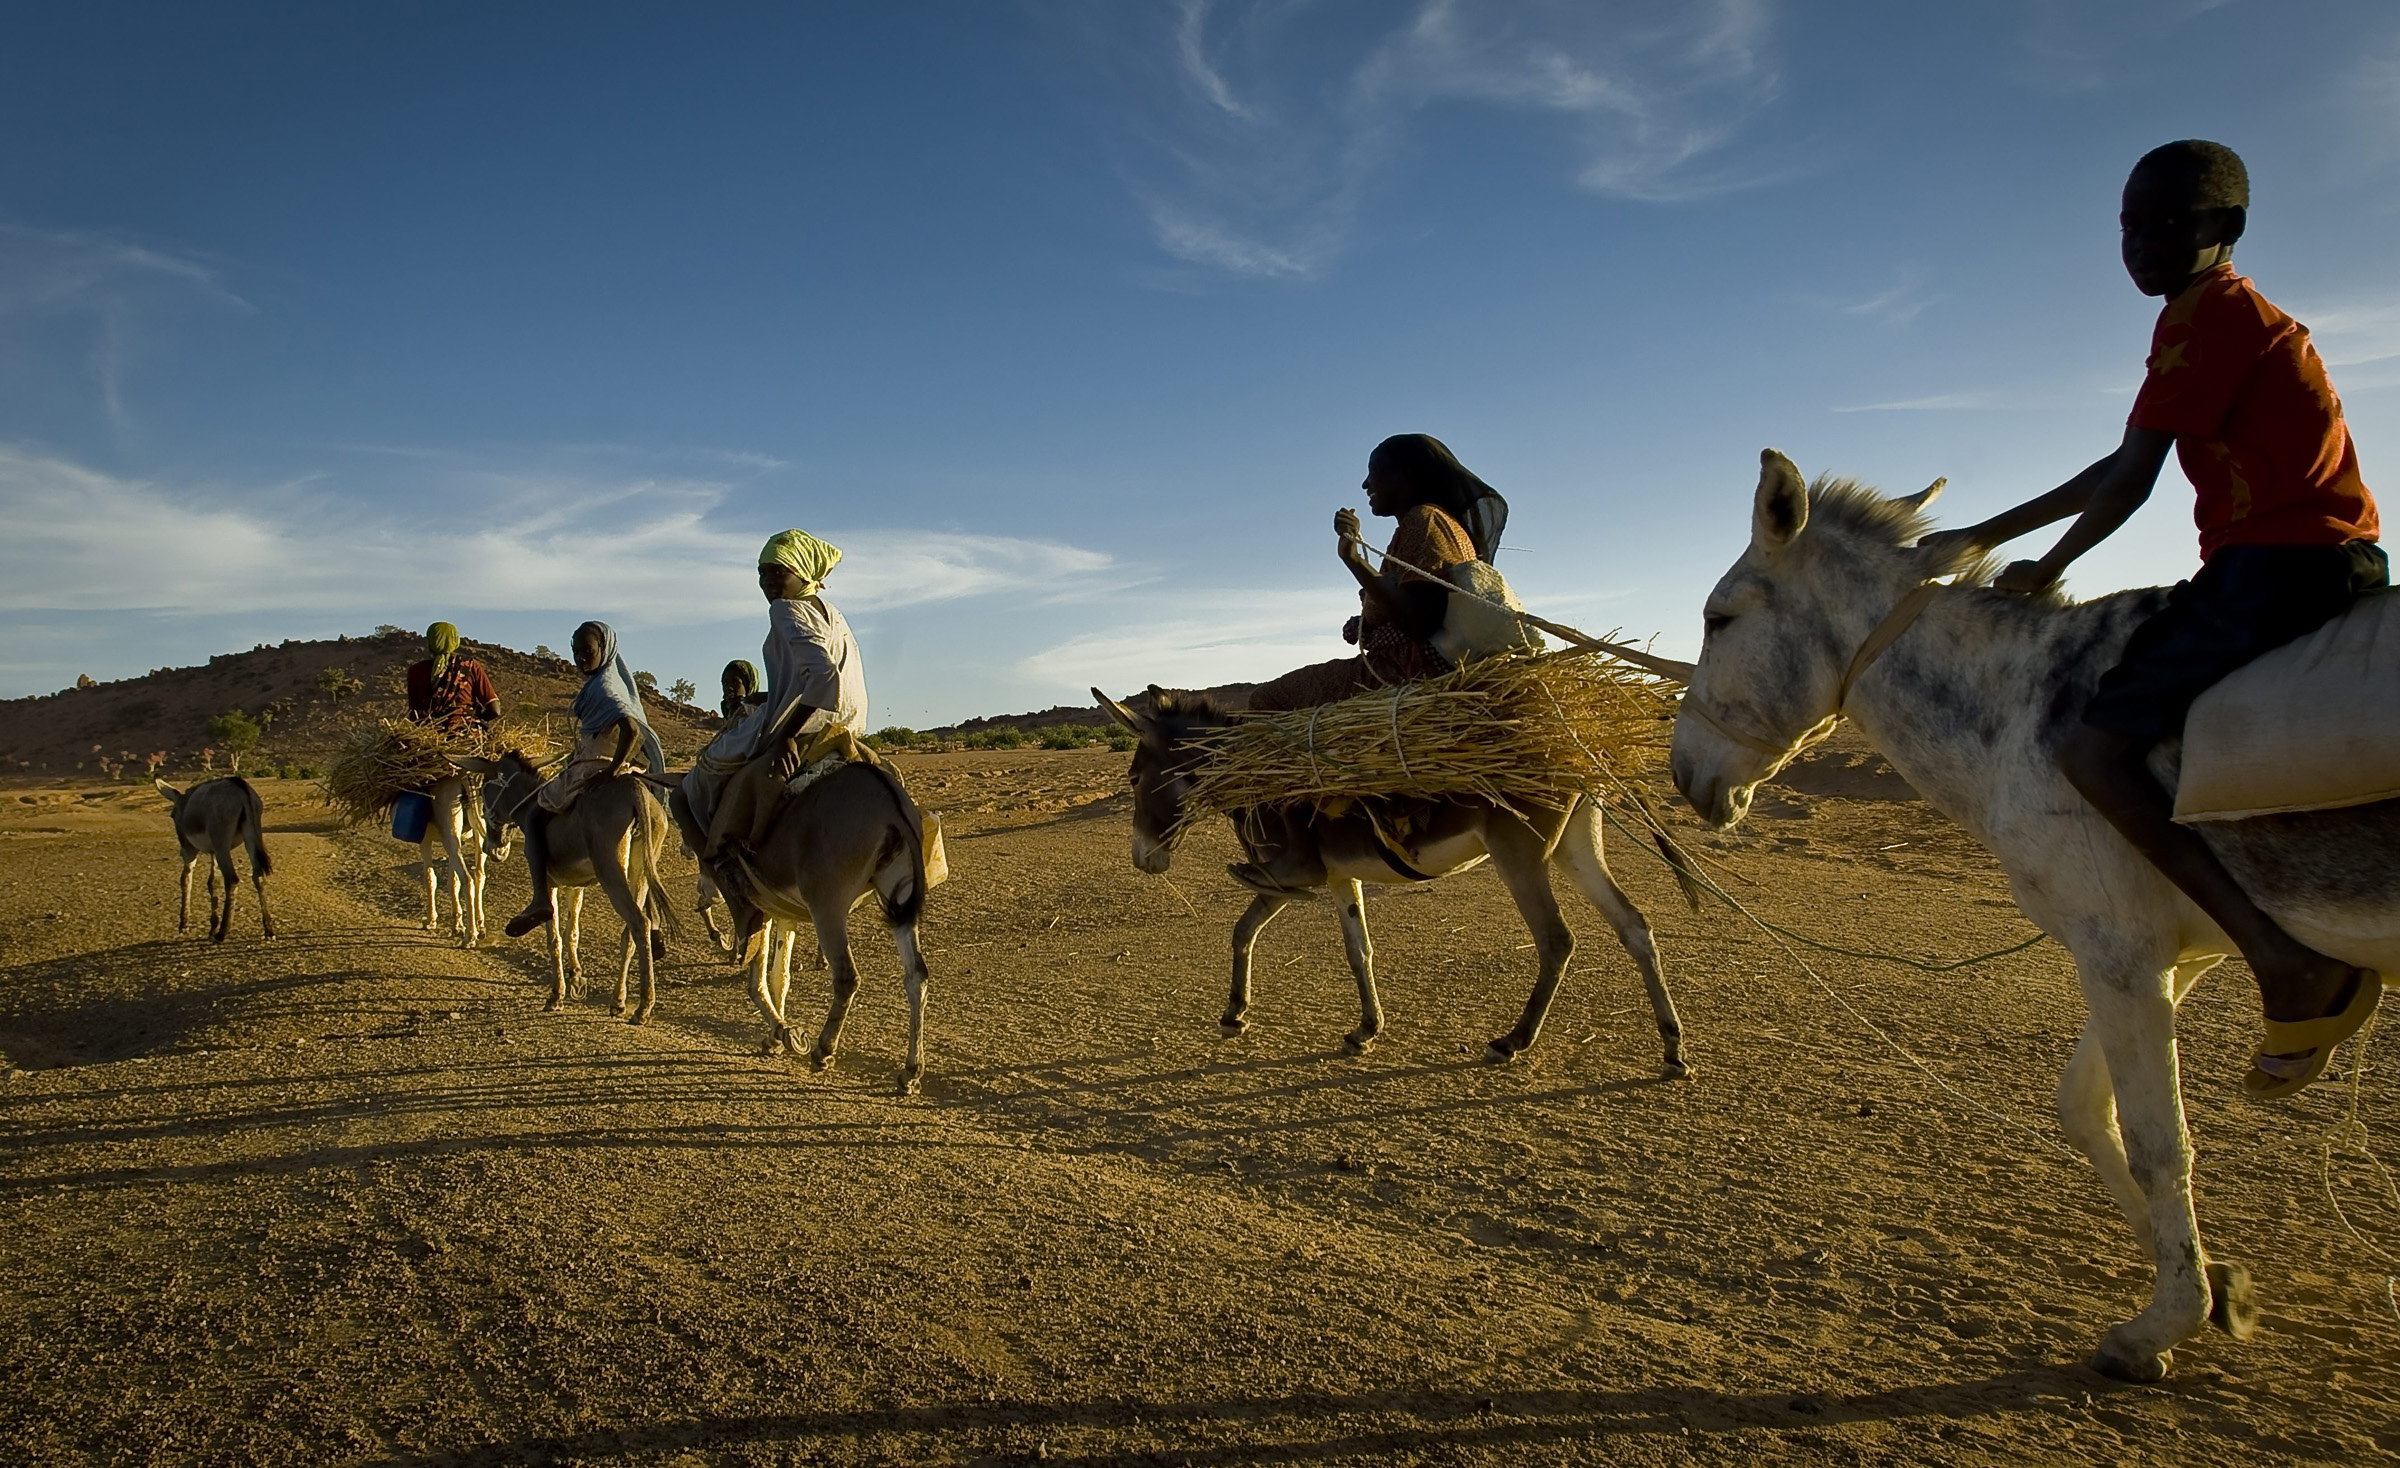 Dafurian refugees in Eastern Chad - by F. Noy